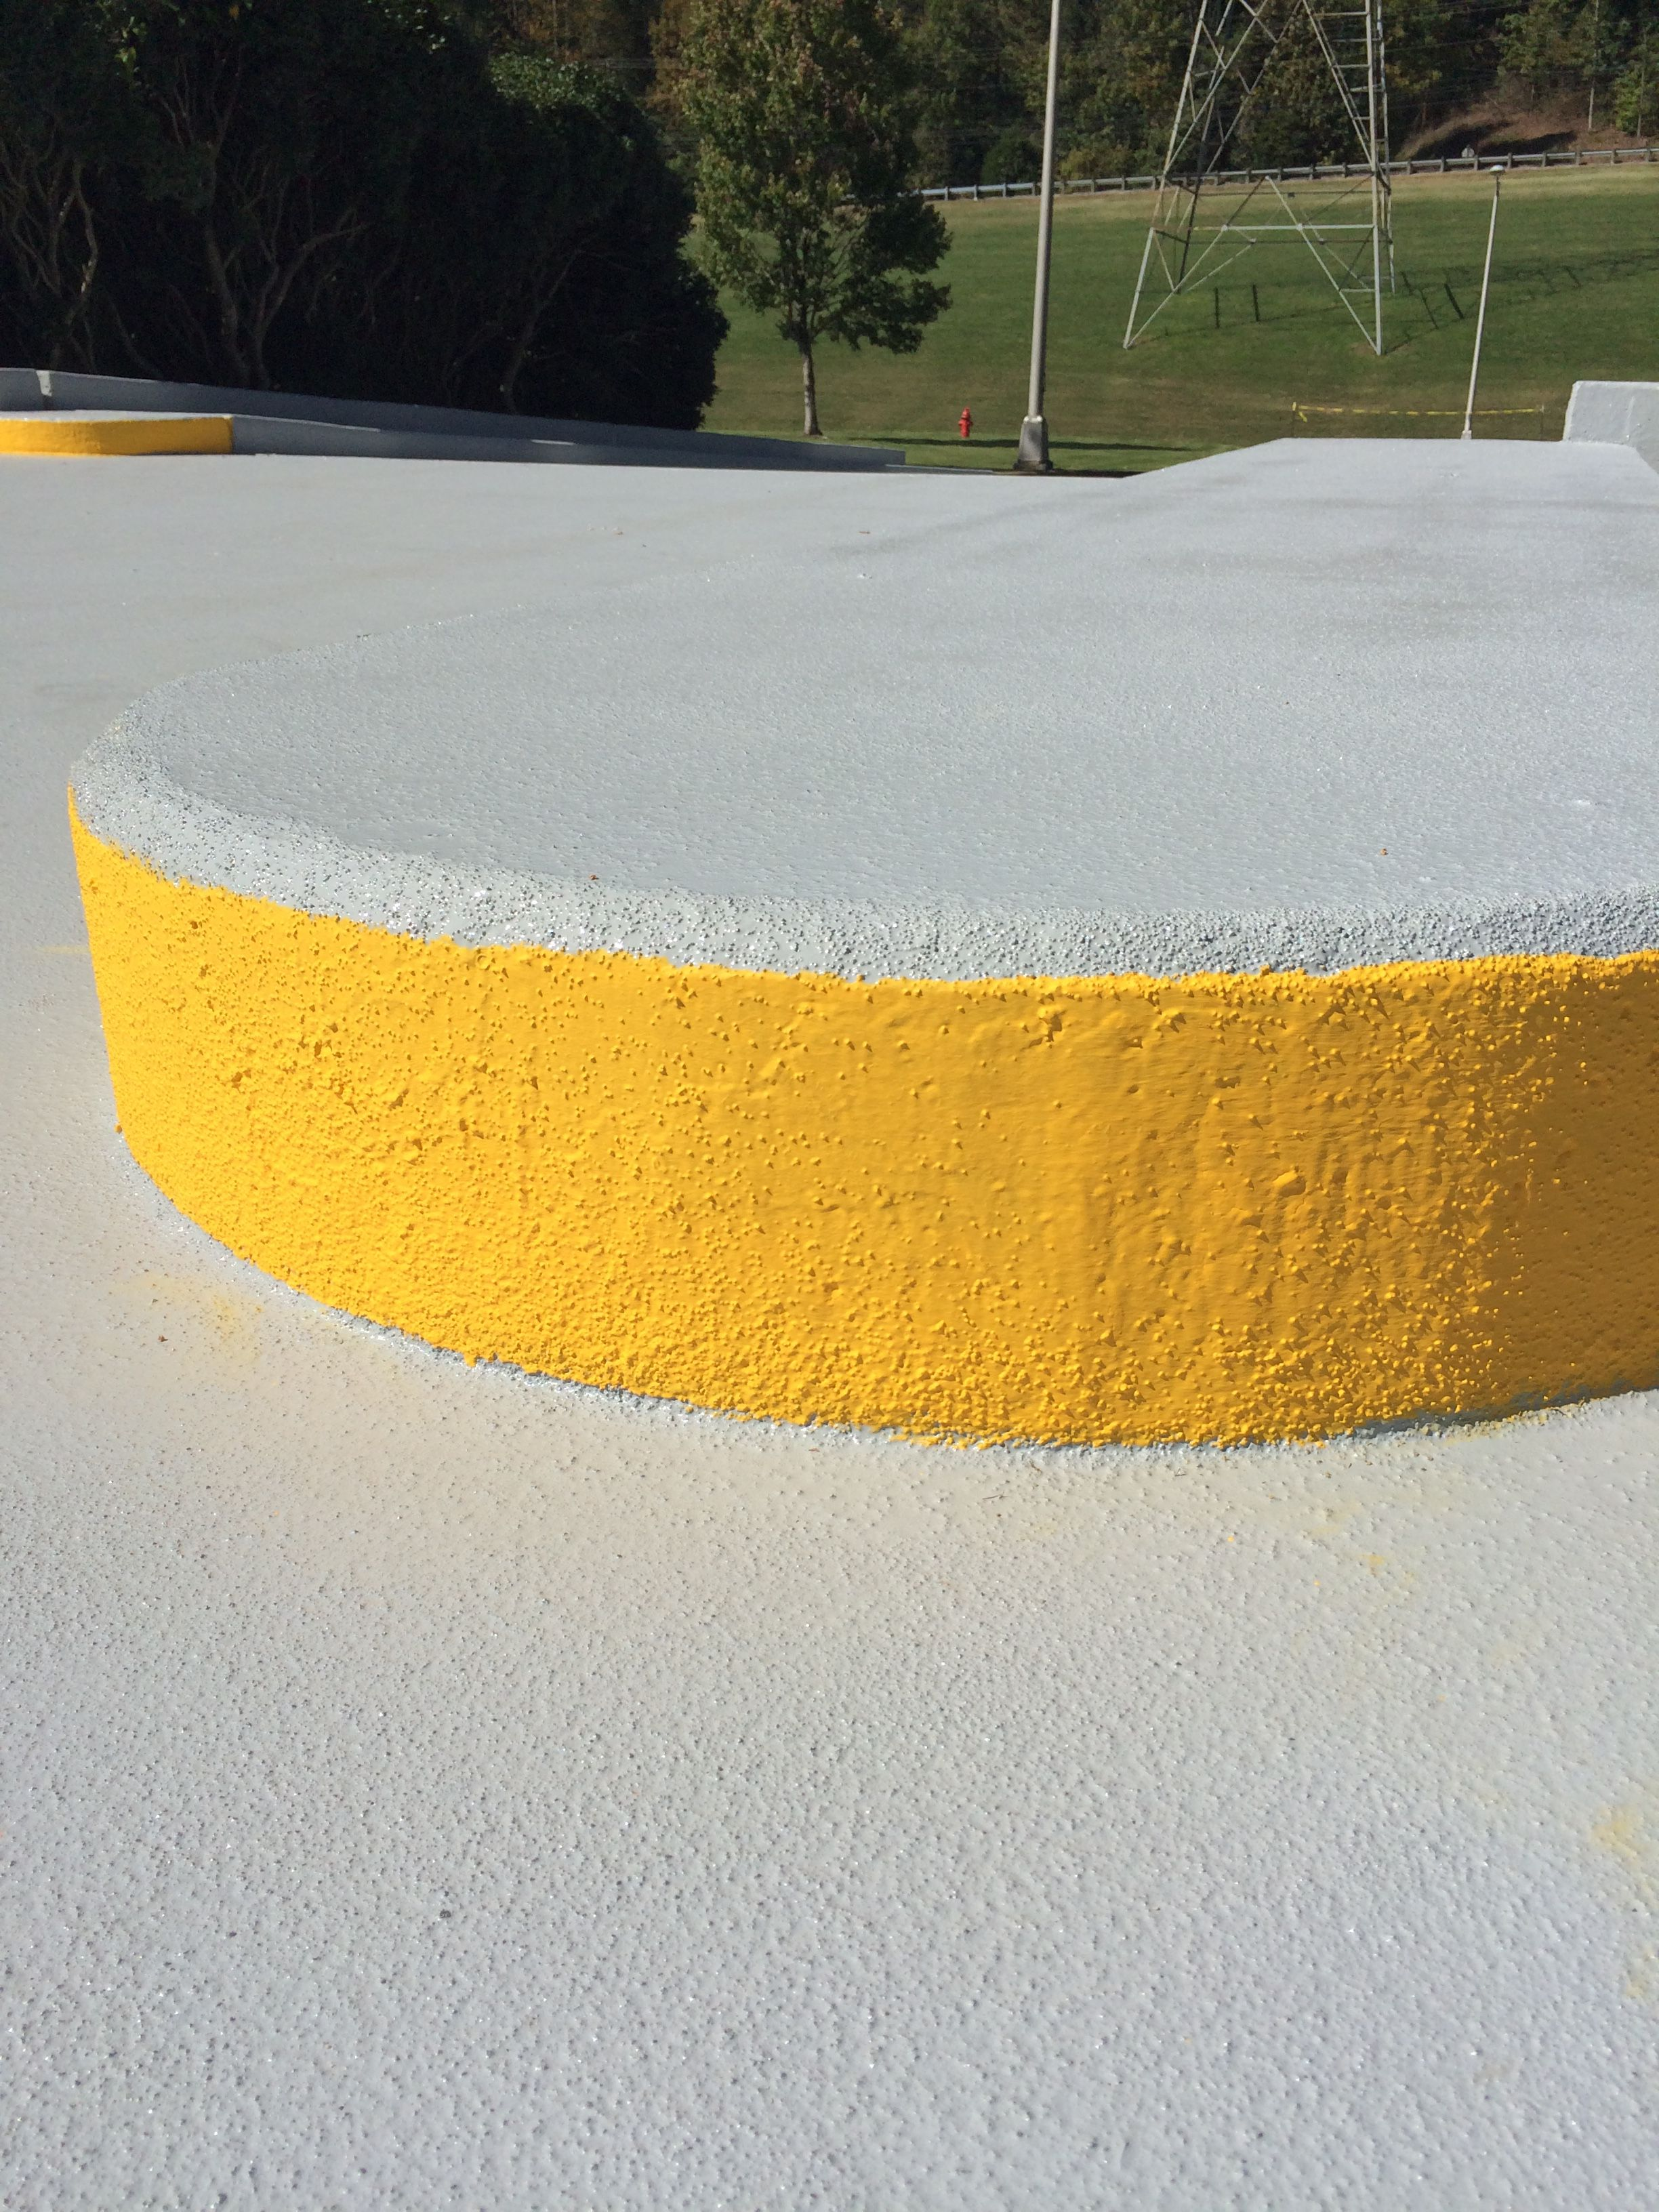 865-680-9225 Epoxy Coatings for Concrete Surfaces by AAA Stripe Pro is extremely durable and aids in deterioration prevention aaastripepro@gmail.com can be pressure washed year after year!